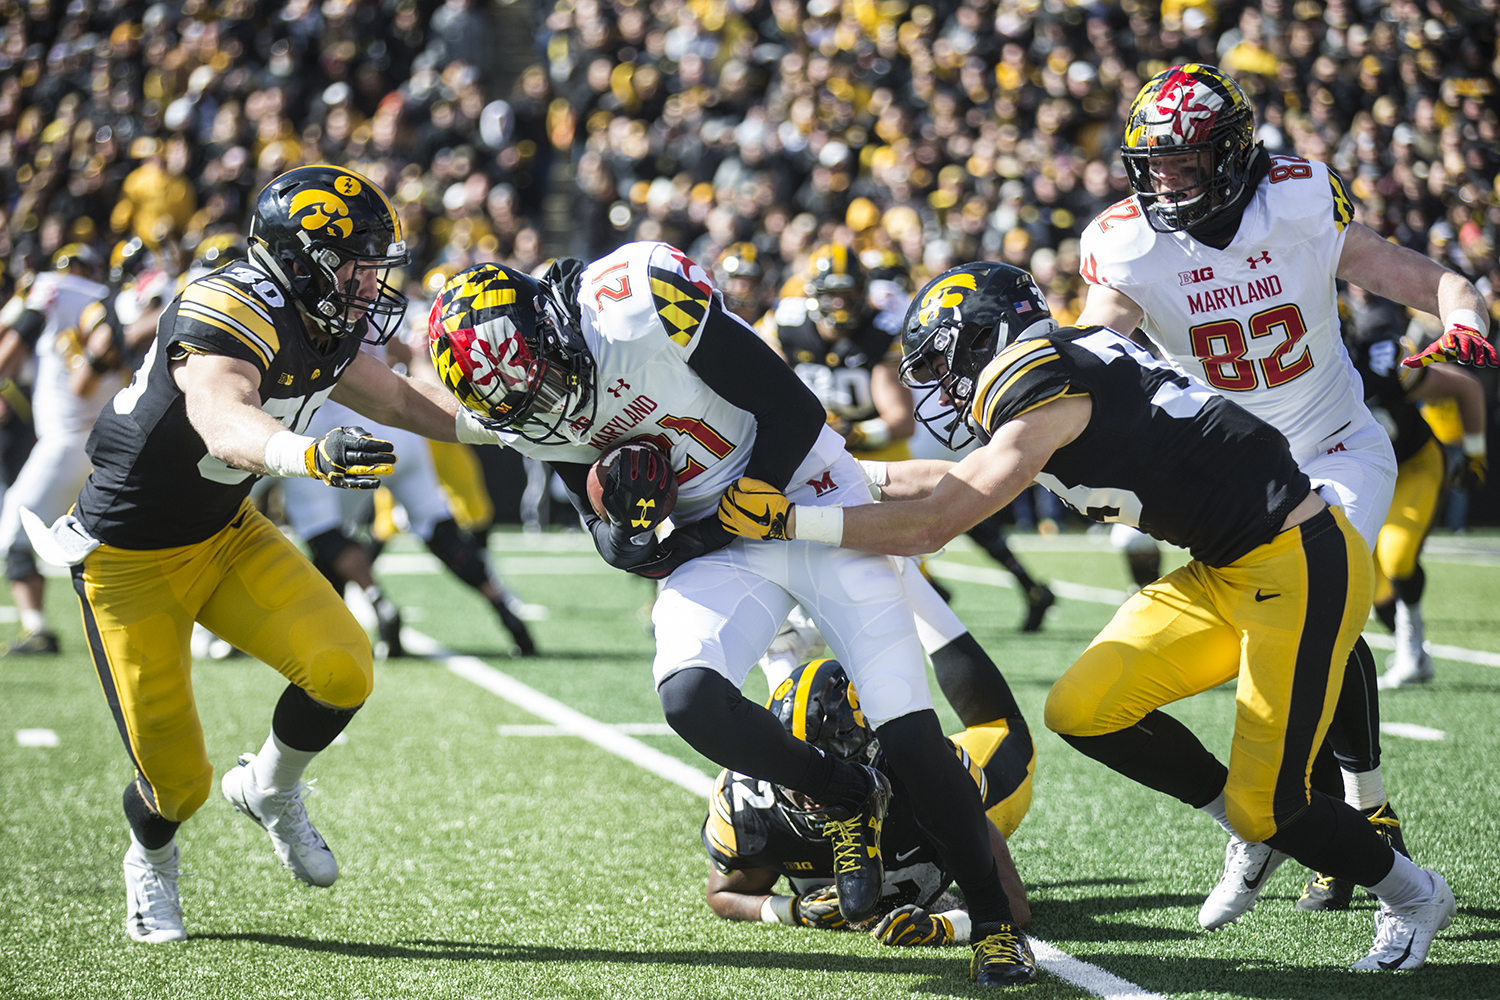 Iowa+wide+receiver+Darryl+Jones+is+tackled+during+a+football+game+between+Iowa+and+Maryland+in+Kinnick+Stadium+on+Saturday%2C+October+20%2C+2018.+The+Hawkeyes+defeated+the+Terrapins%2C+23-0.+